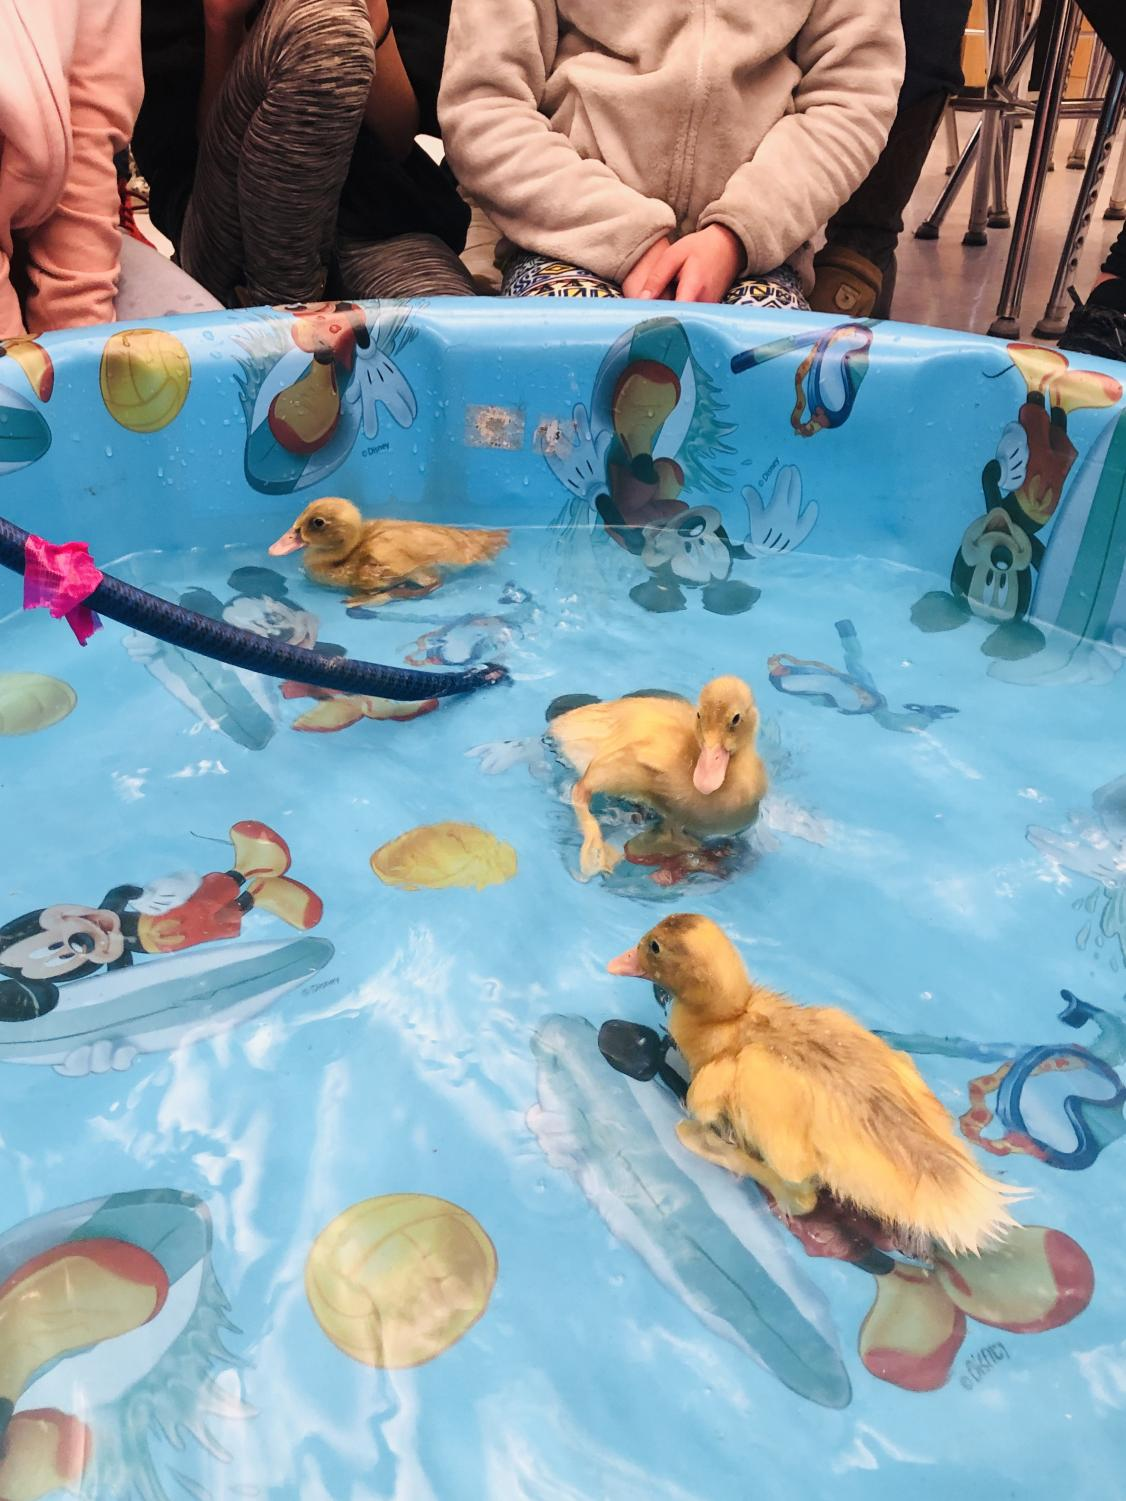 Ducklings swim around the baby pool in Ms. Moore's room.